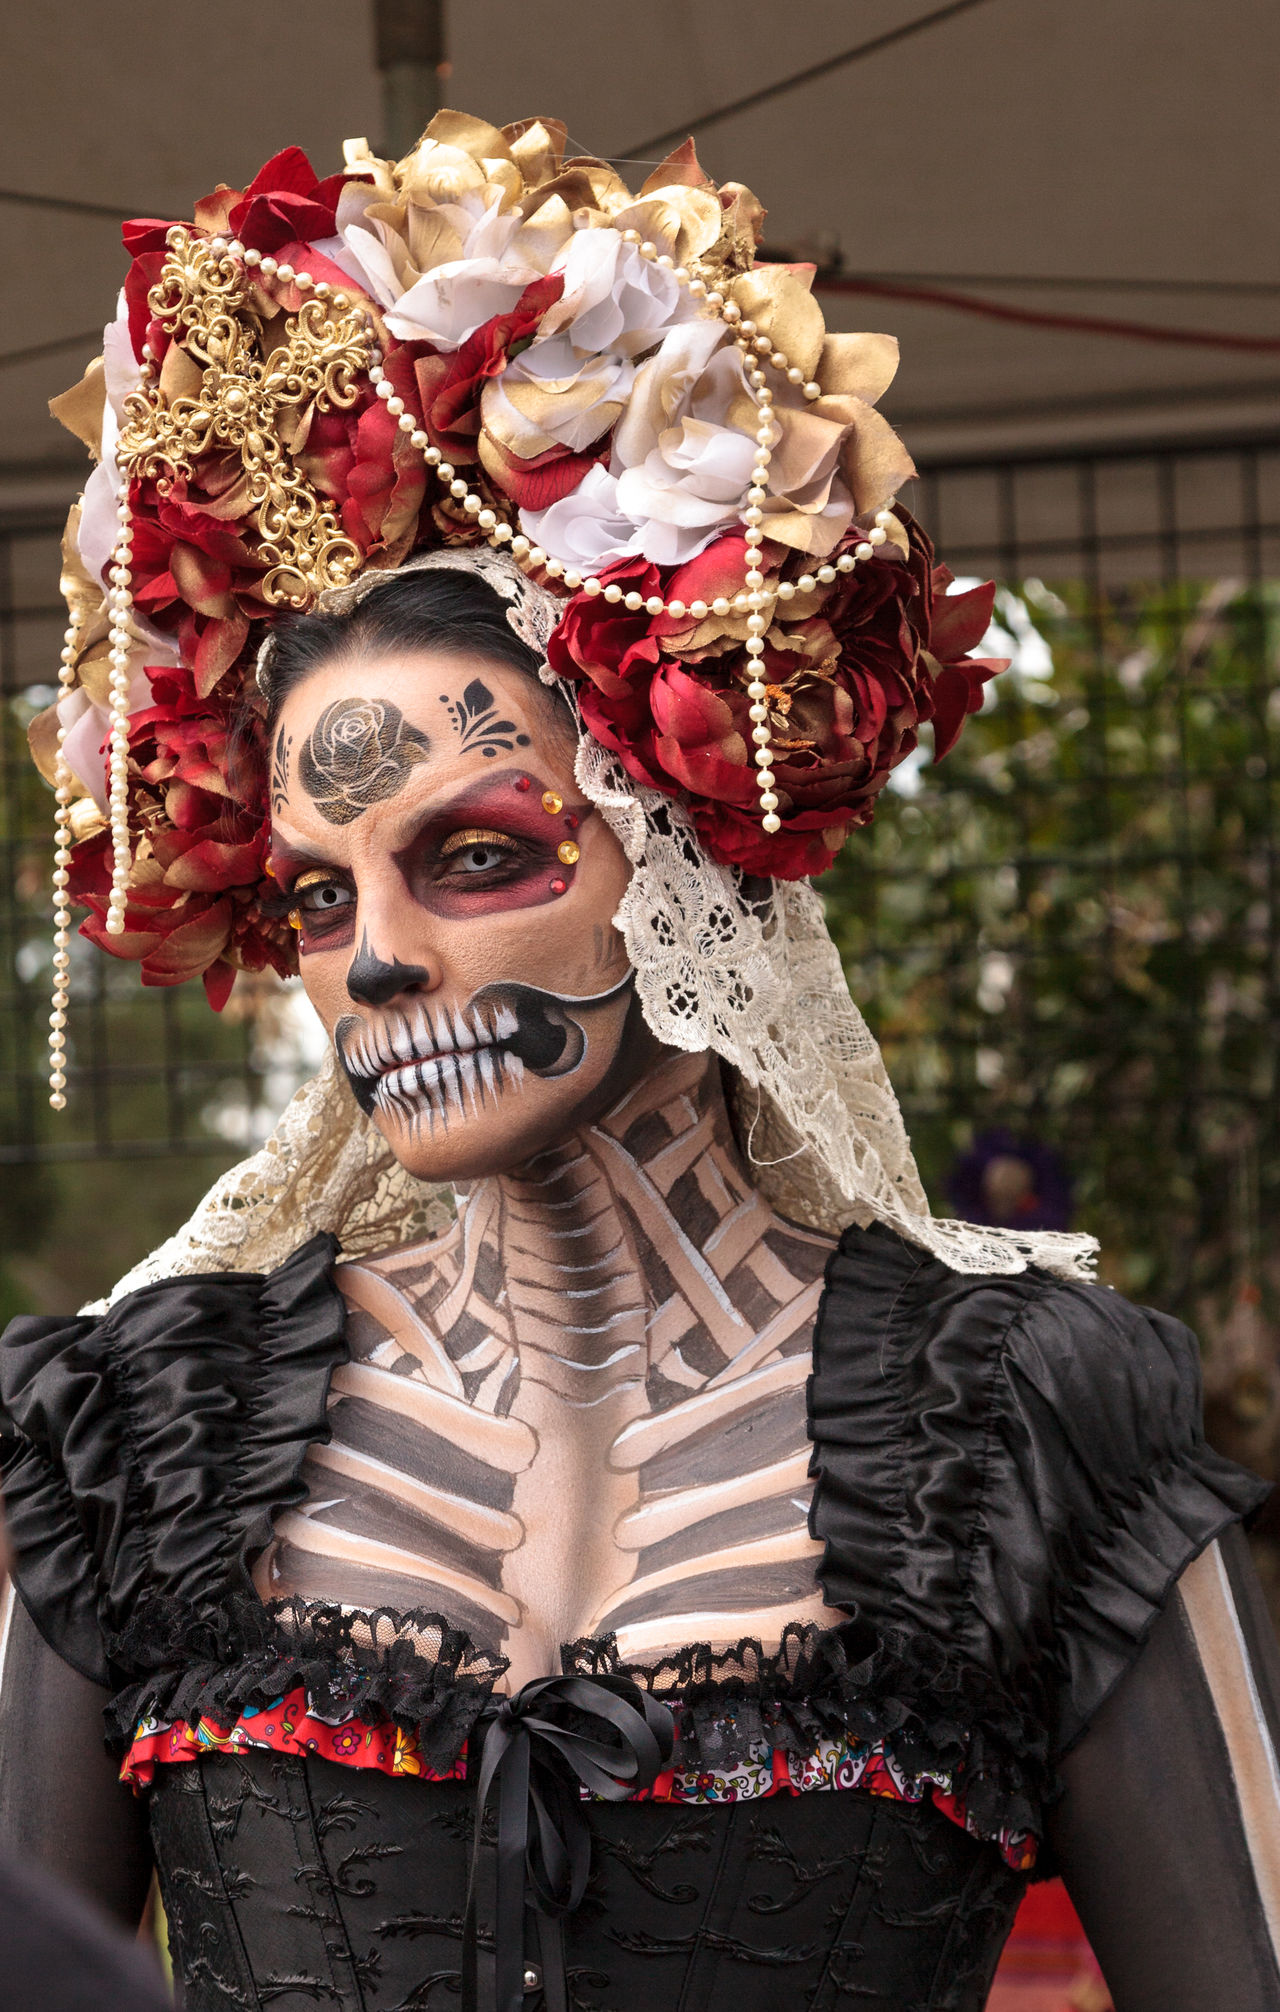 Los Angeles, CA, USA - October 29, 2016: Skeleton woman performer at Dia de los Muertos, Day of the dead, in Los Angeles at the Hollywood Forever Cemetery grounds. Editorial use only. Adult Adults Only All Saints Day Butterfly Day Day Of The Dead Dia De Los Muertos Face Paint Goth Gothic Halloween Headdress Outdoors People Performer  Skelleton Steam Punk Woman